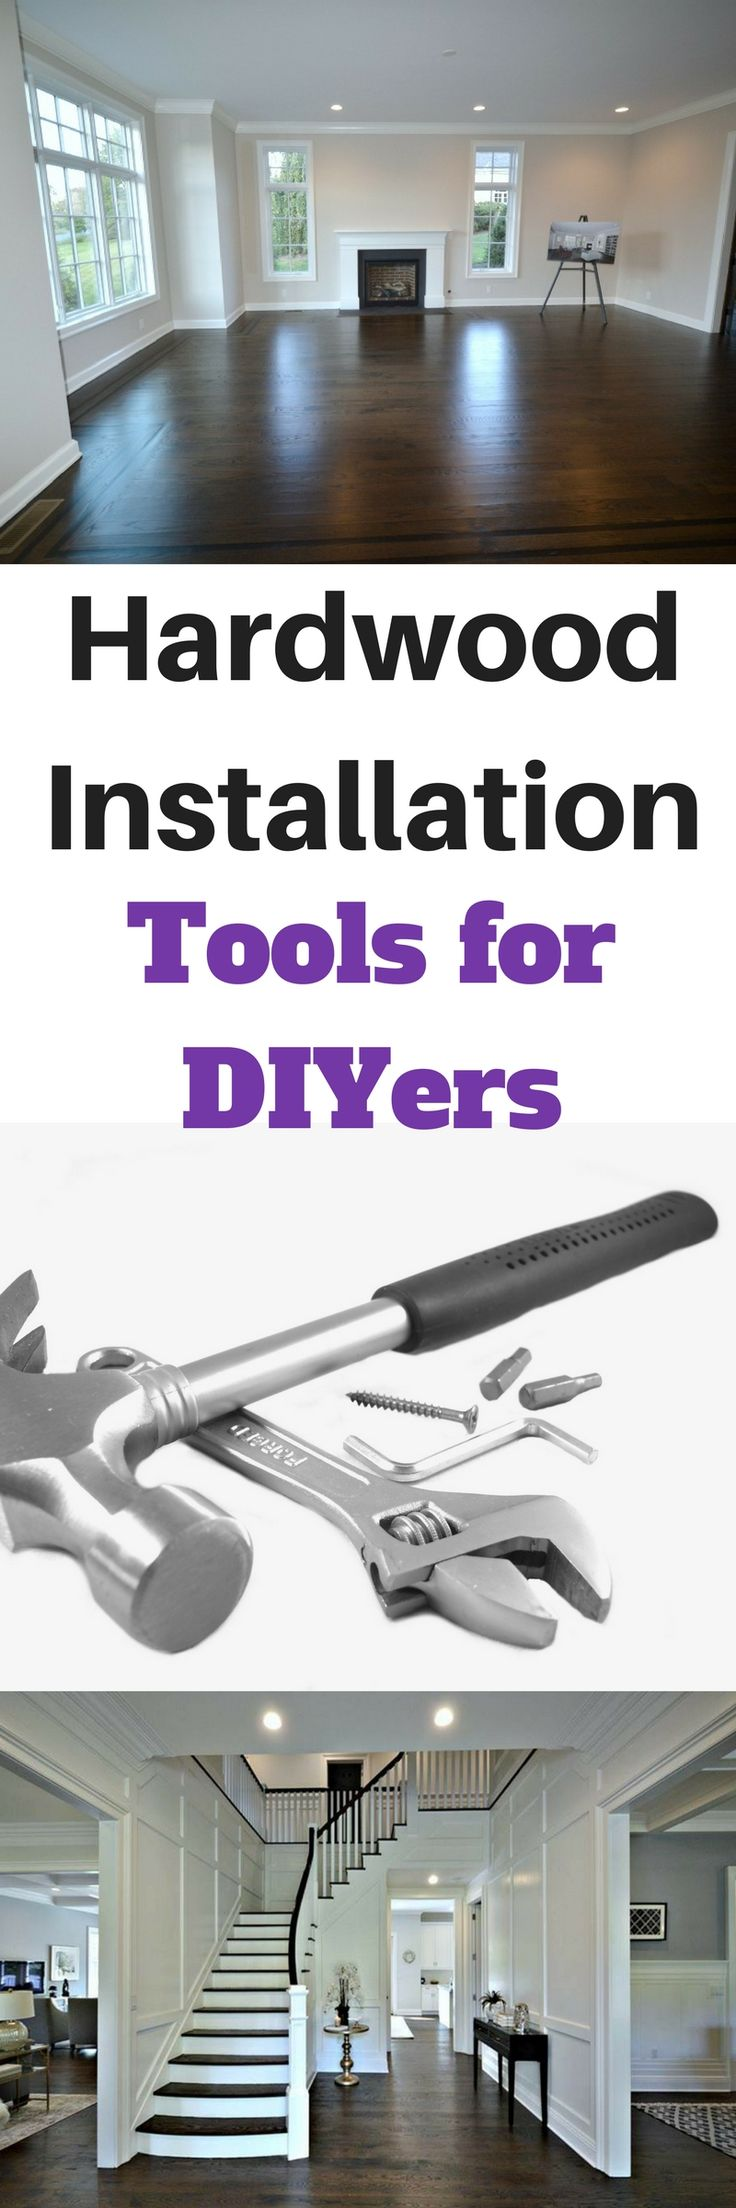 DIY Hardwood Installation tools - 9 must have tools for do-it-yourselfers